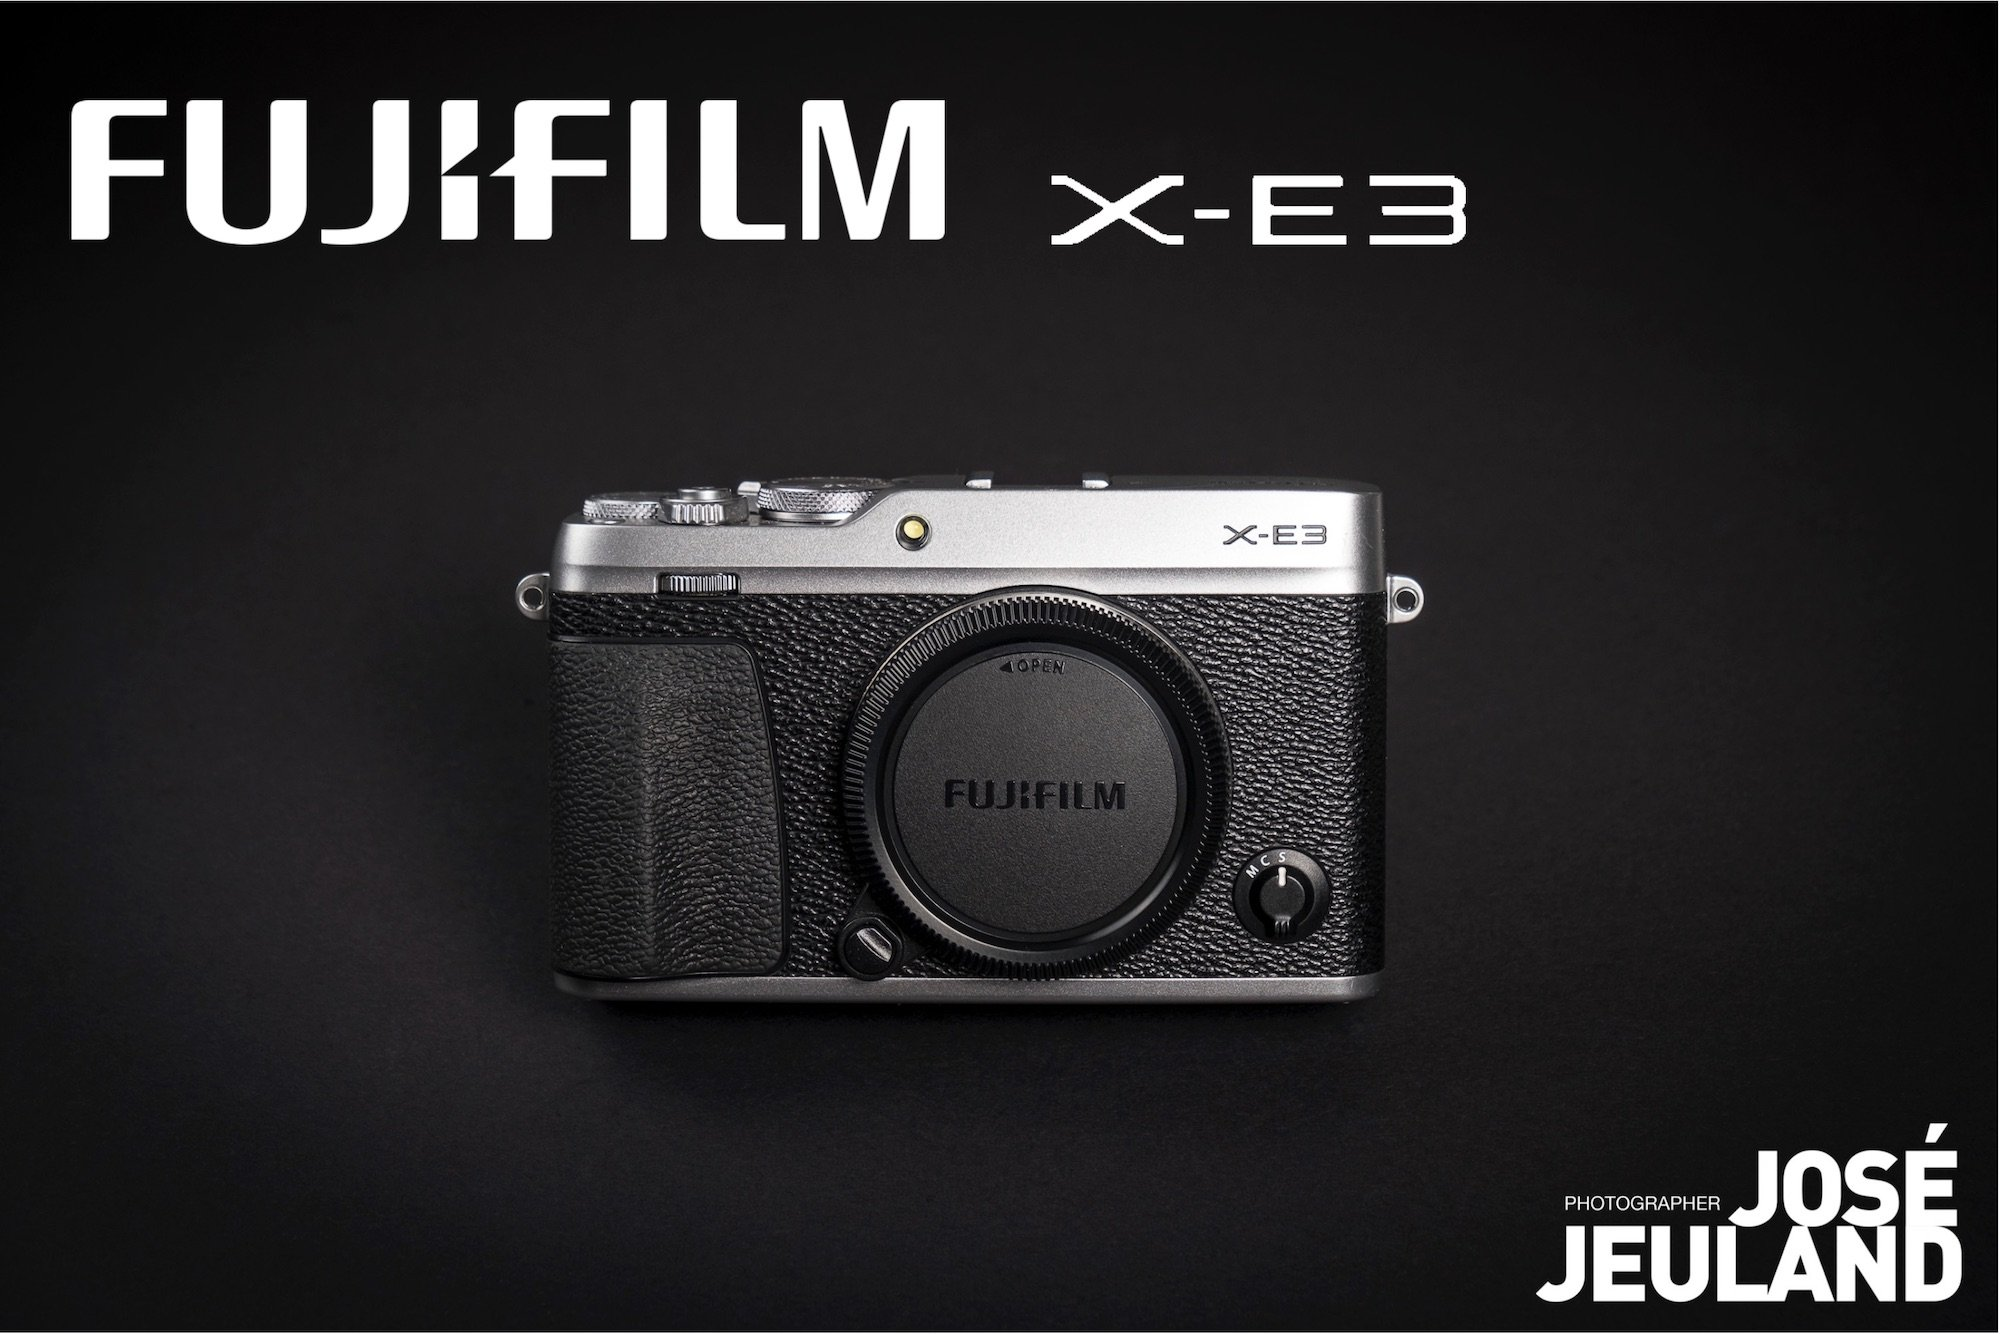 FUJIFILM X-E3 photo camera - Jose Jeuland web